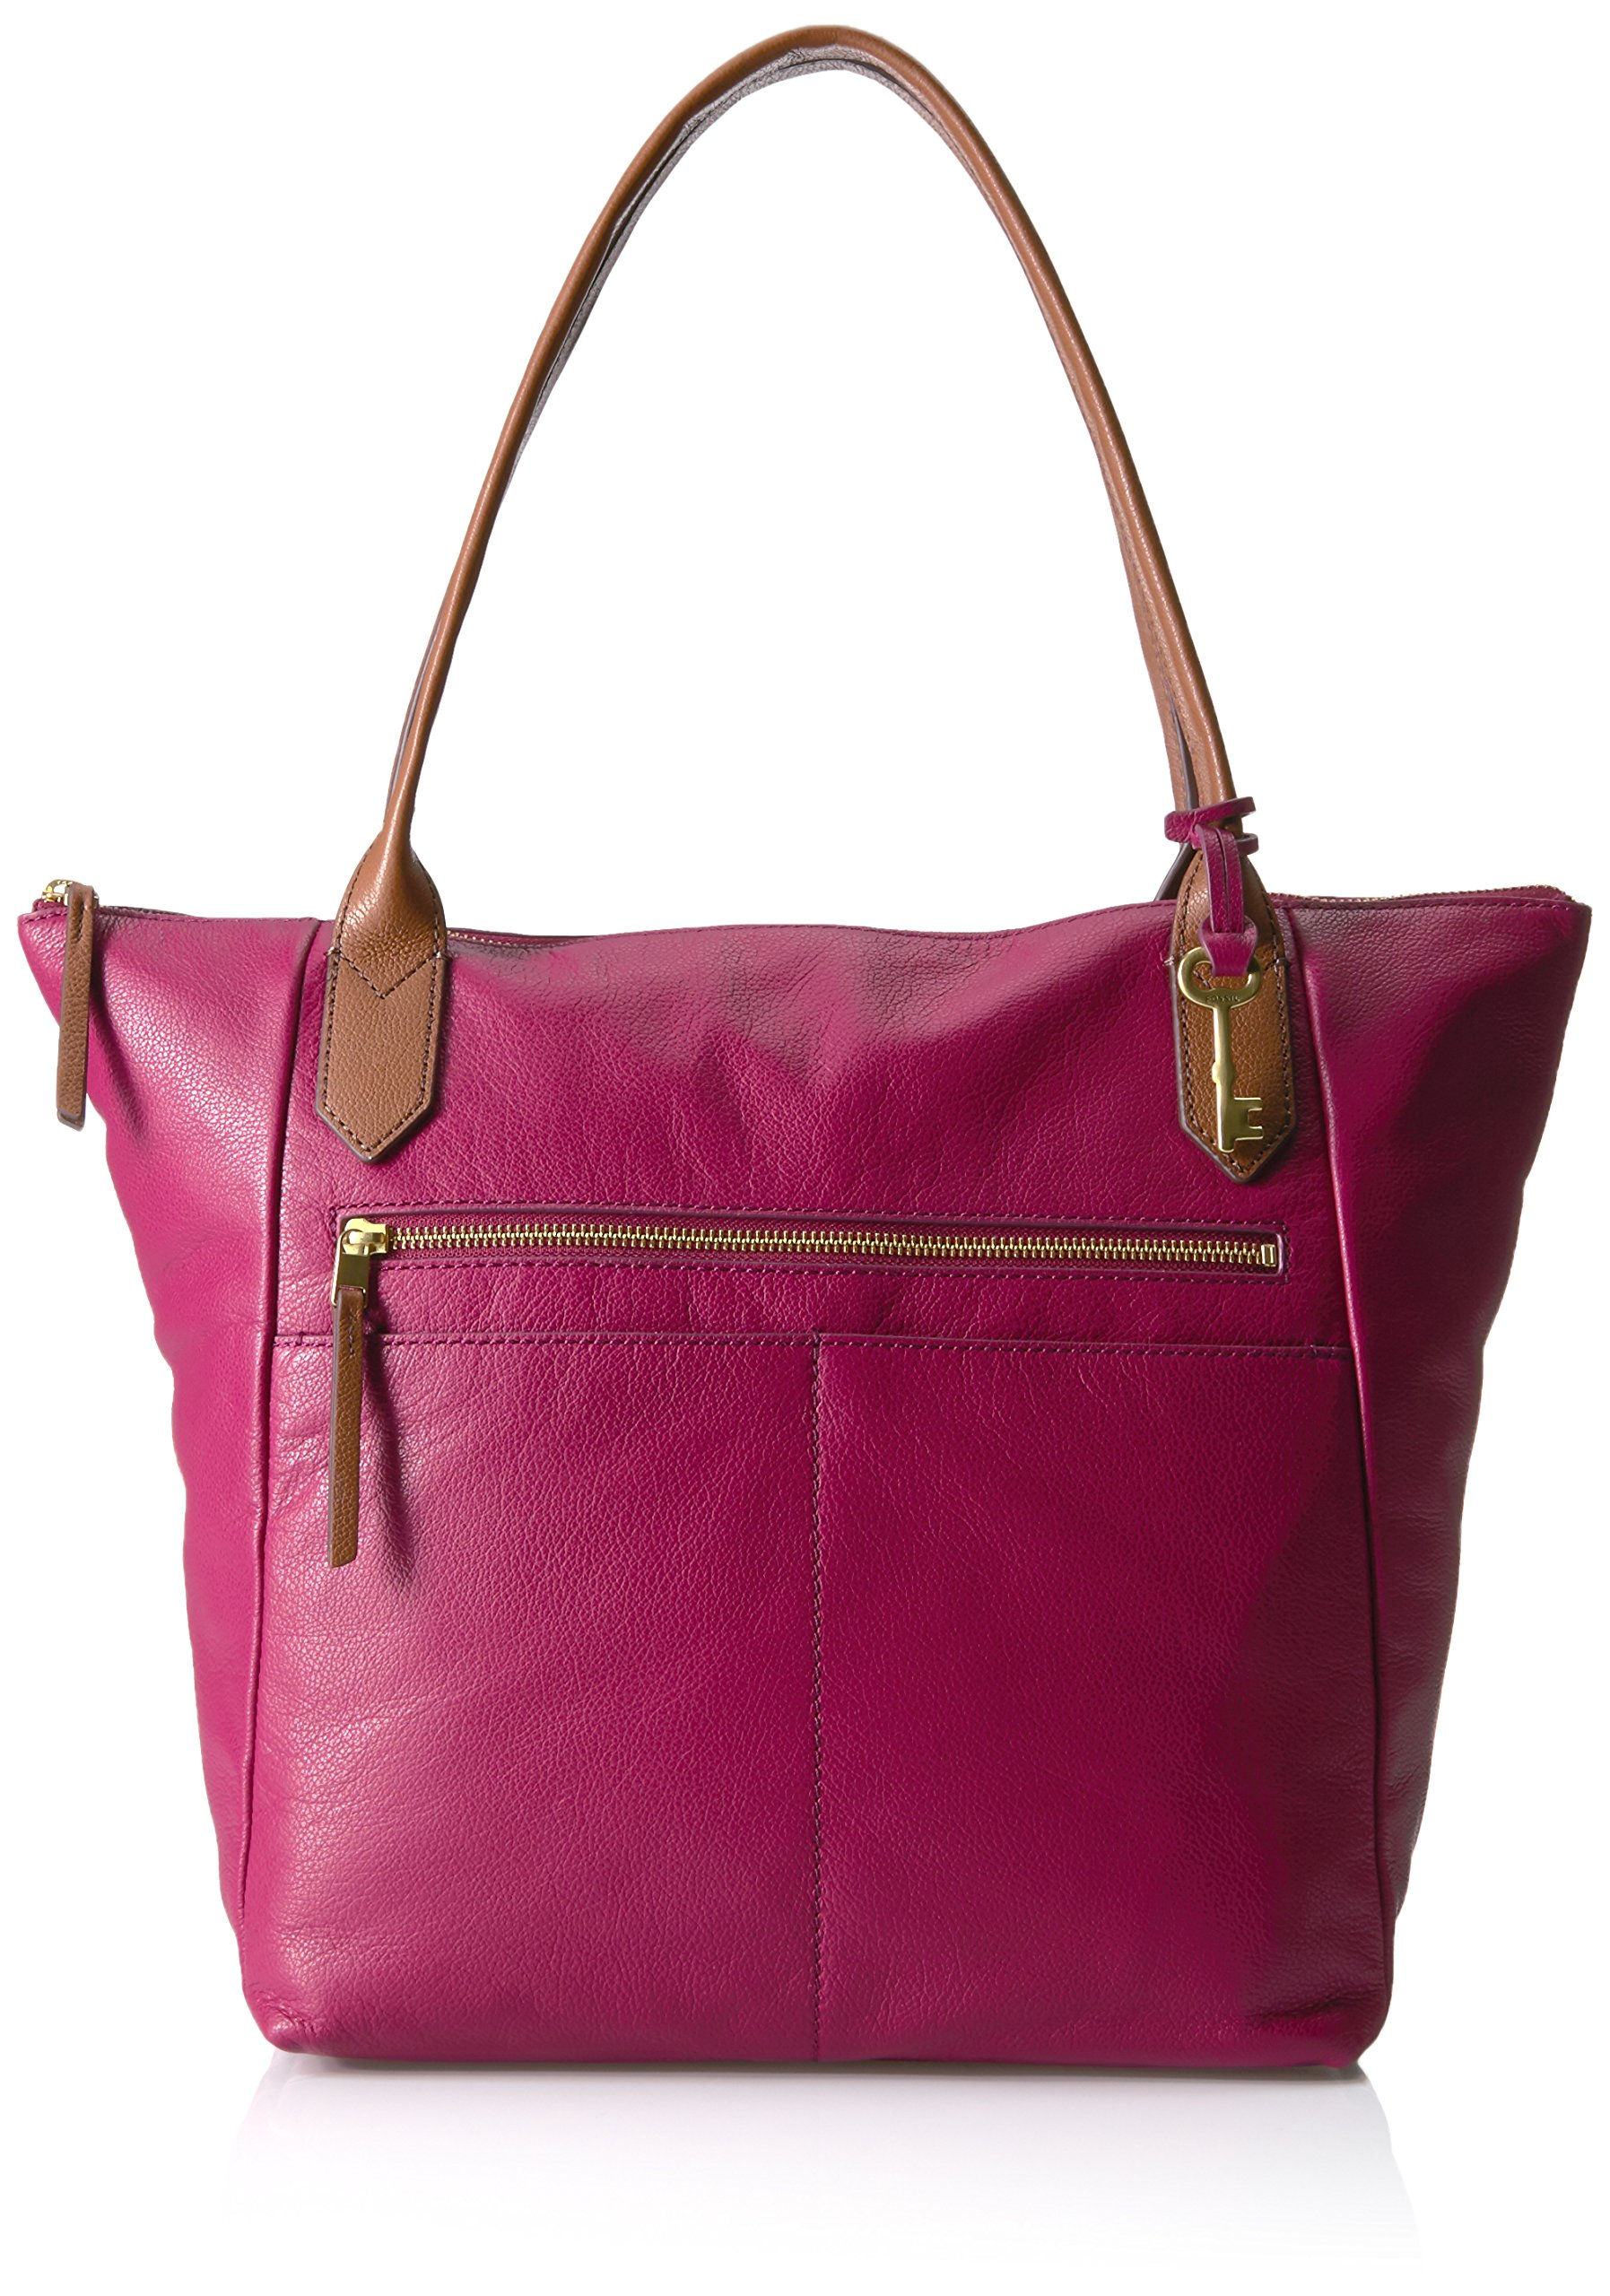 Fossil Fiona Tote Bag, Raspberry Wine